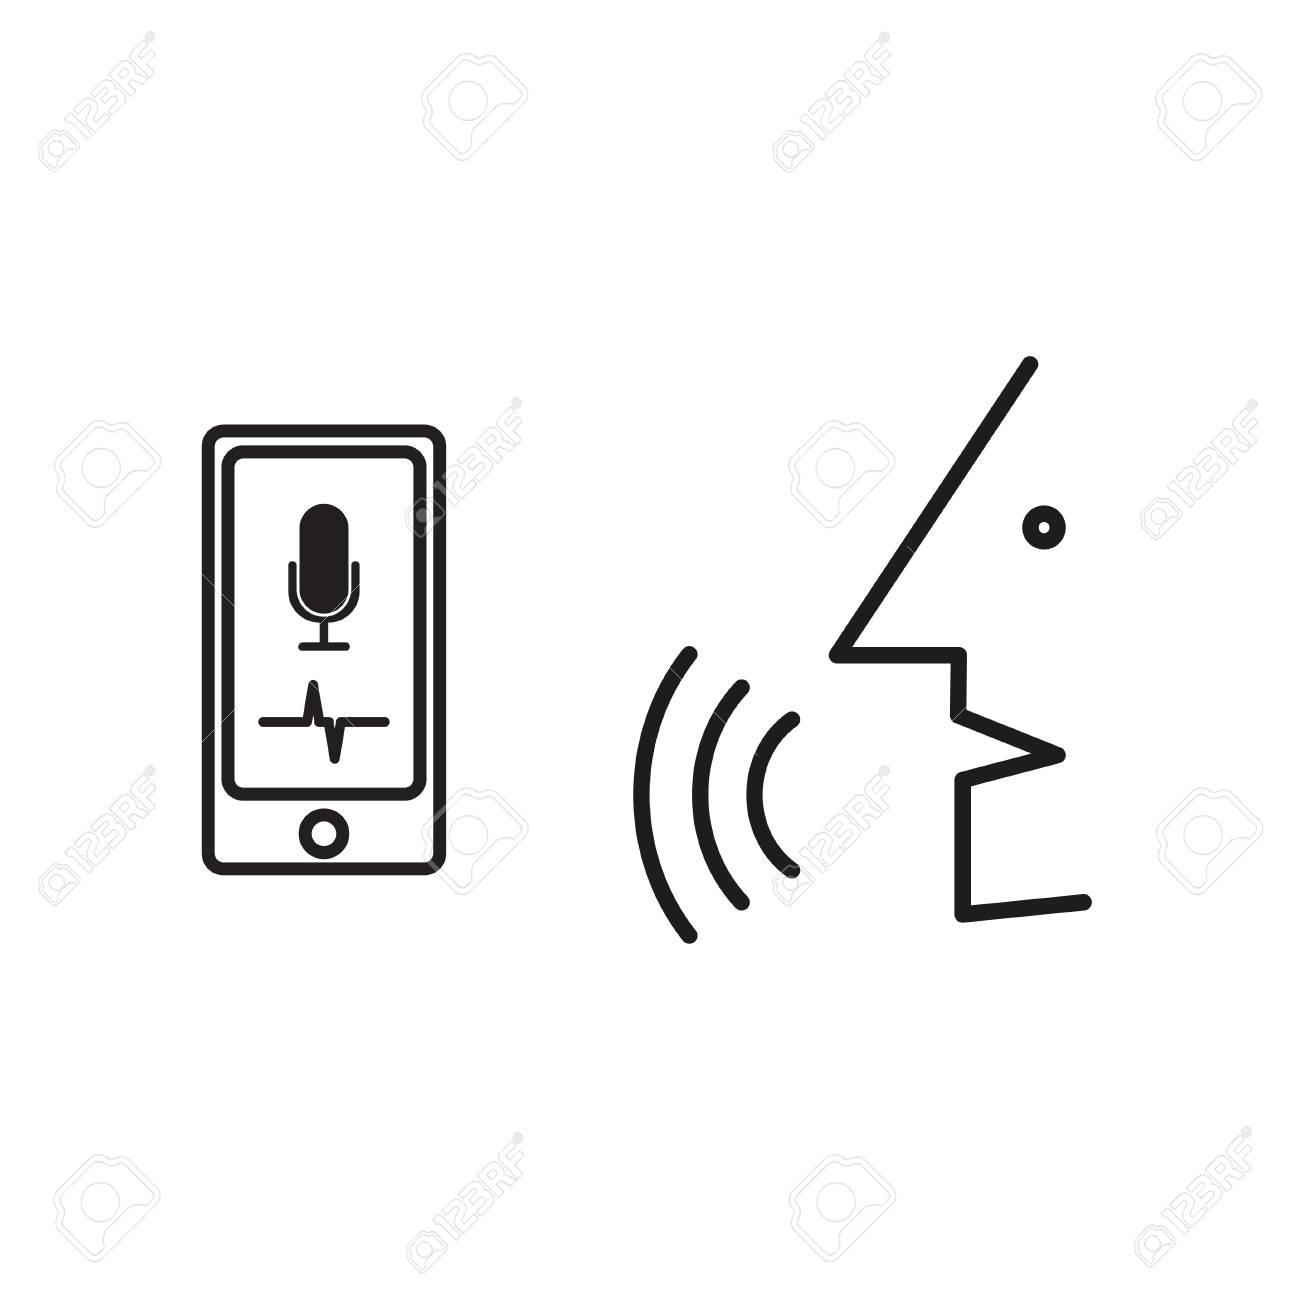 Digital generated smartphone with intelligent personal voice